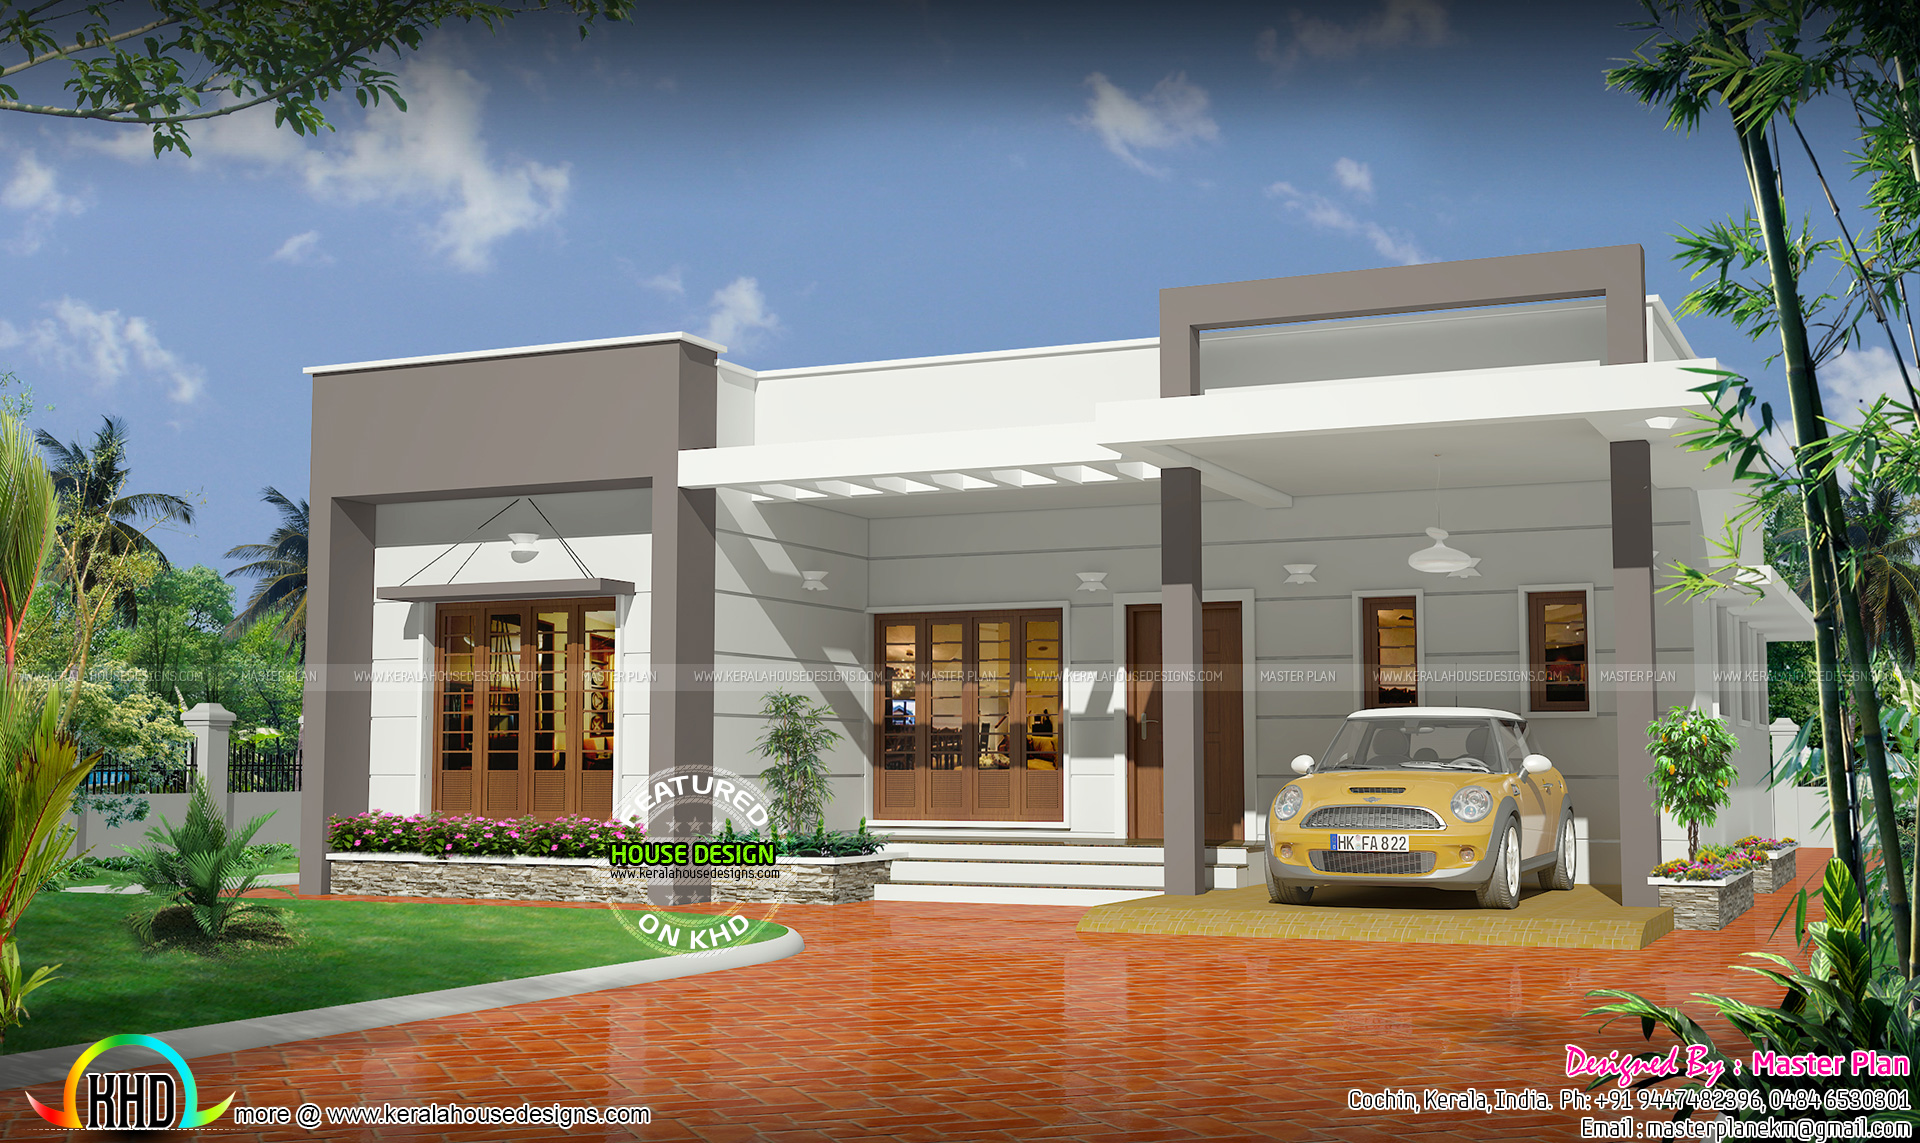 20 Lakh Home In Surat Beautiful Houses With Nature Under 20 Lakhs